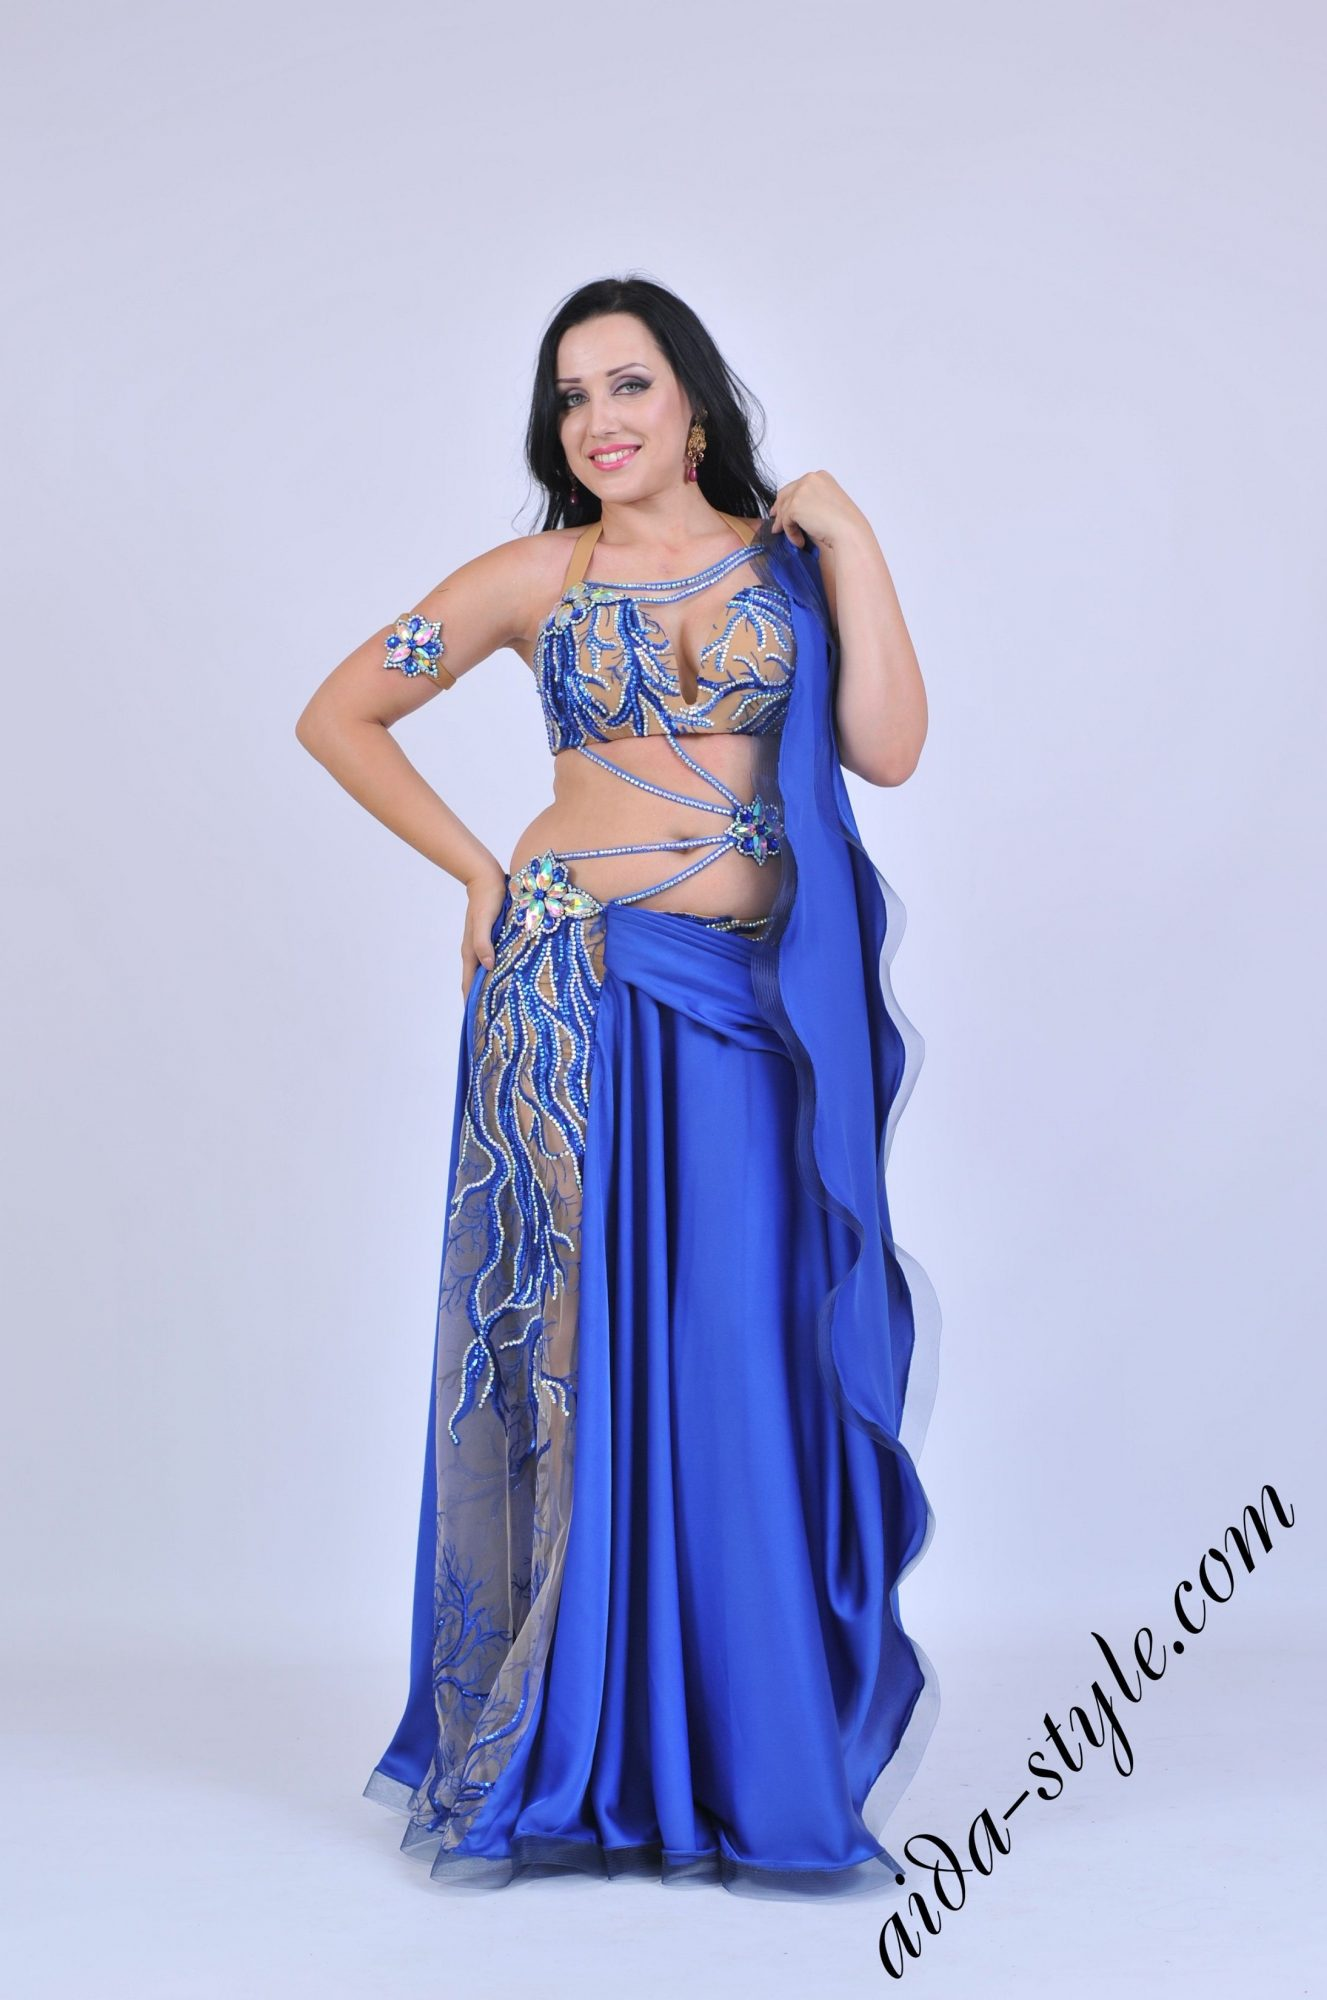 Blue belly dancer Aida costume with bracelets